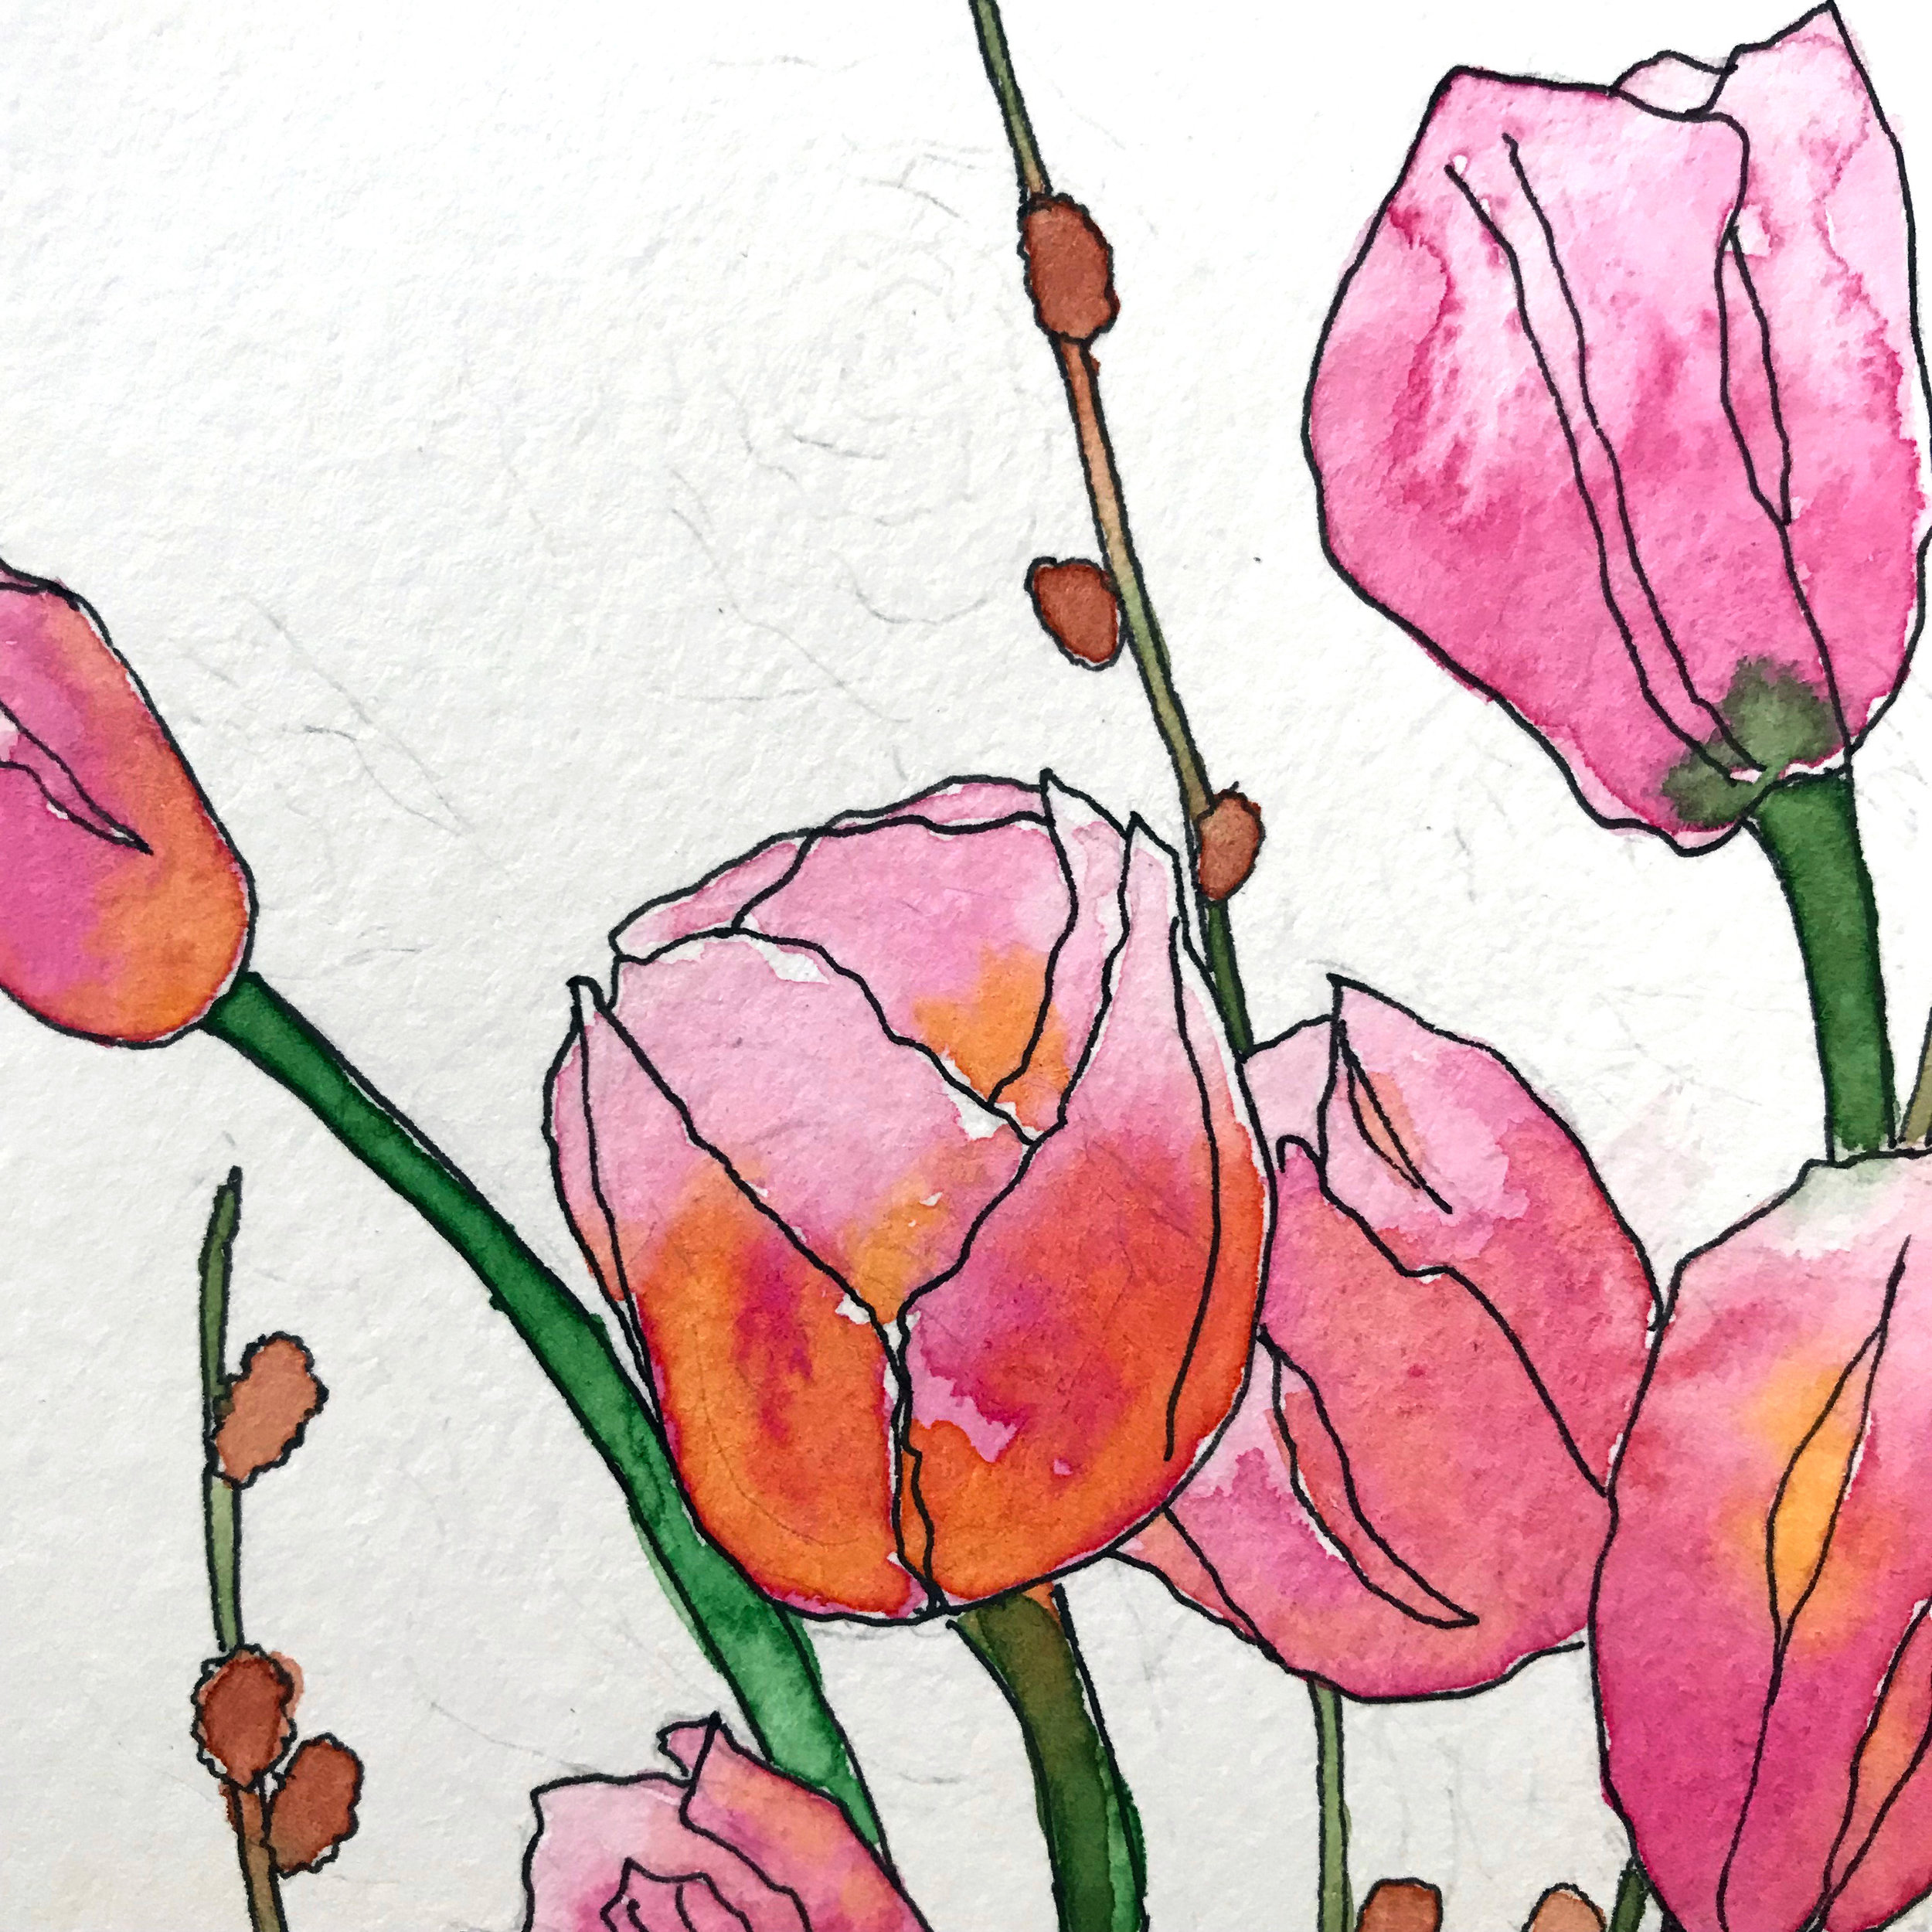 Using a student-grade paper, pencil does not erase as easily and you can see the pigment bloom more as the water dry, creating lines in the pink petals, by danielleandco.com